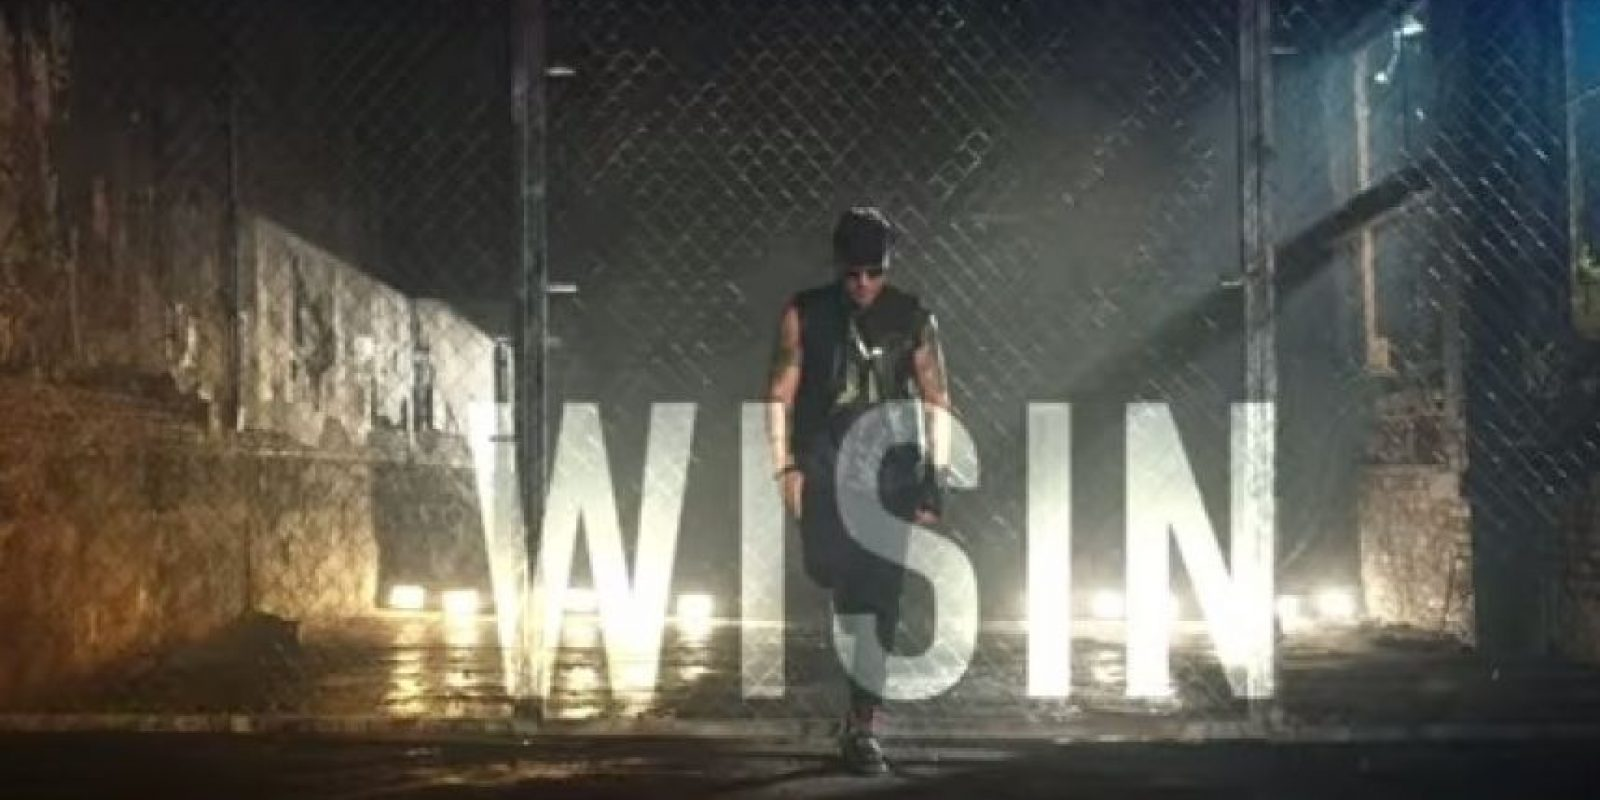 Foto: YouTube/WisinofficialVEVO